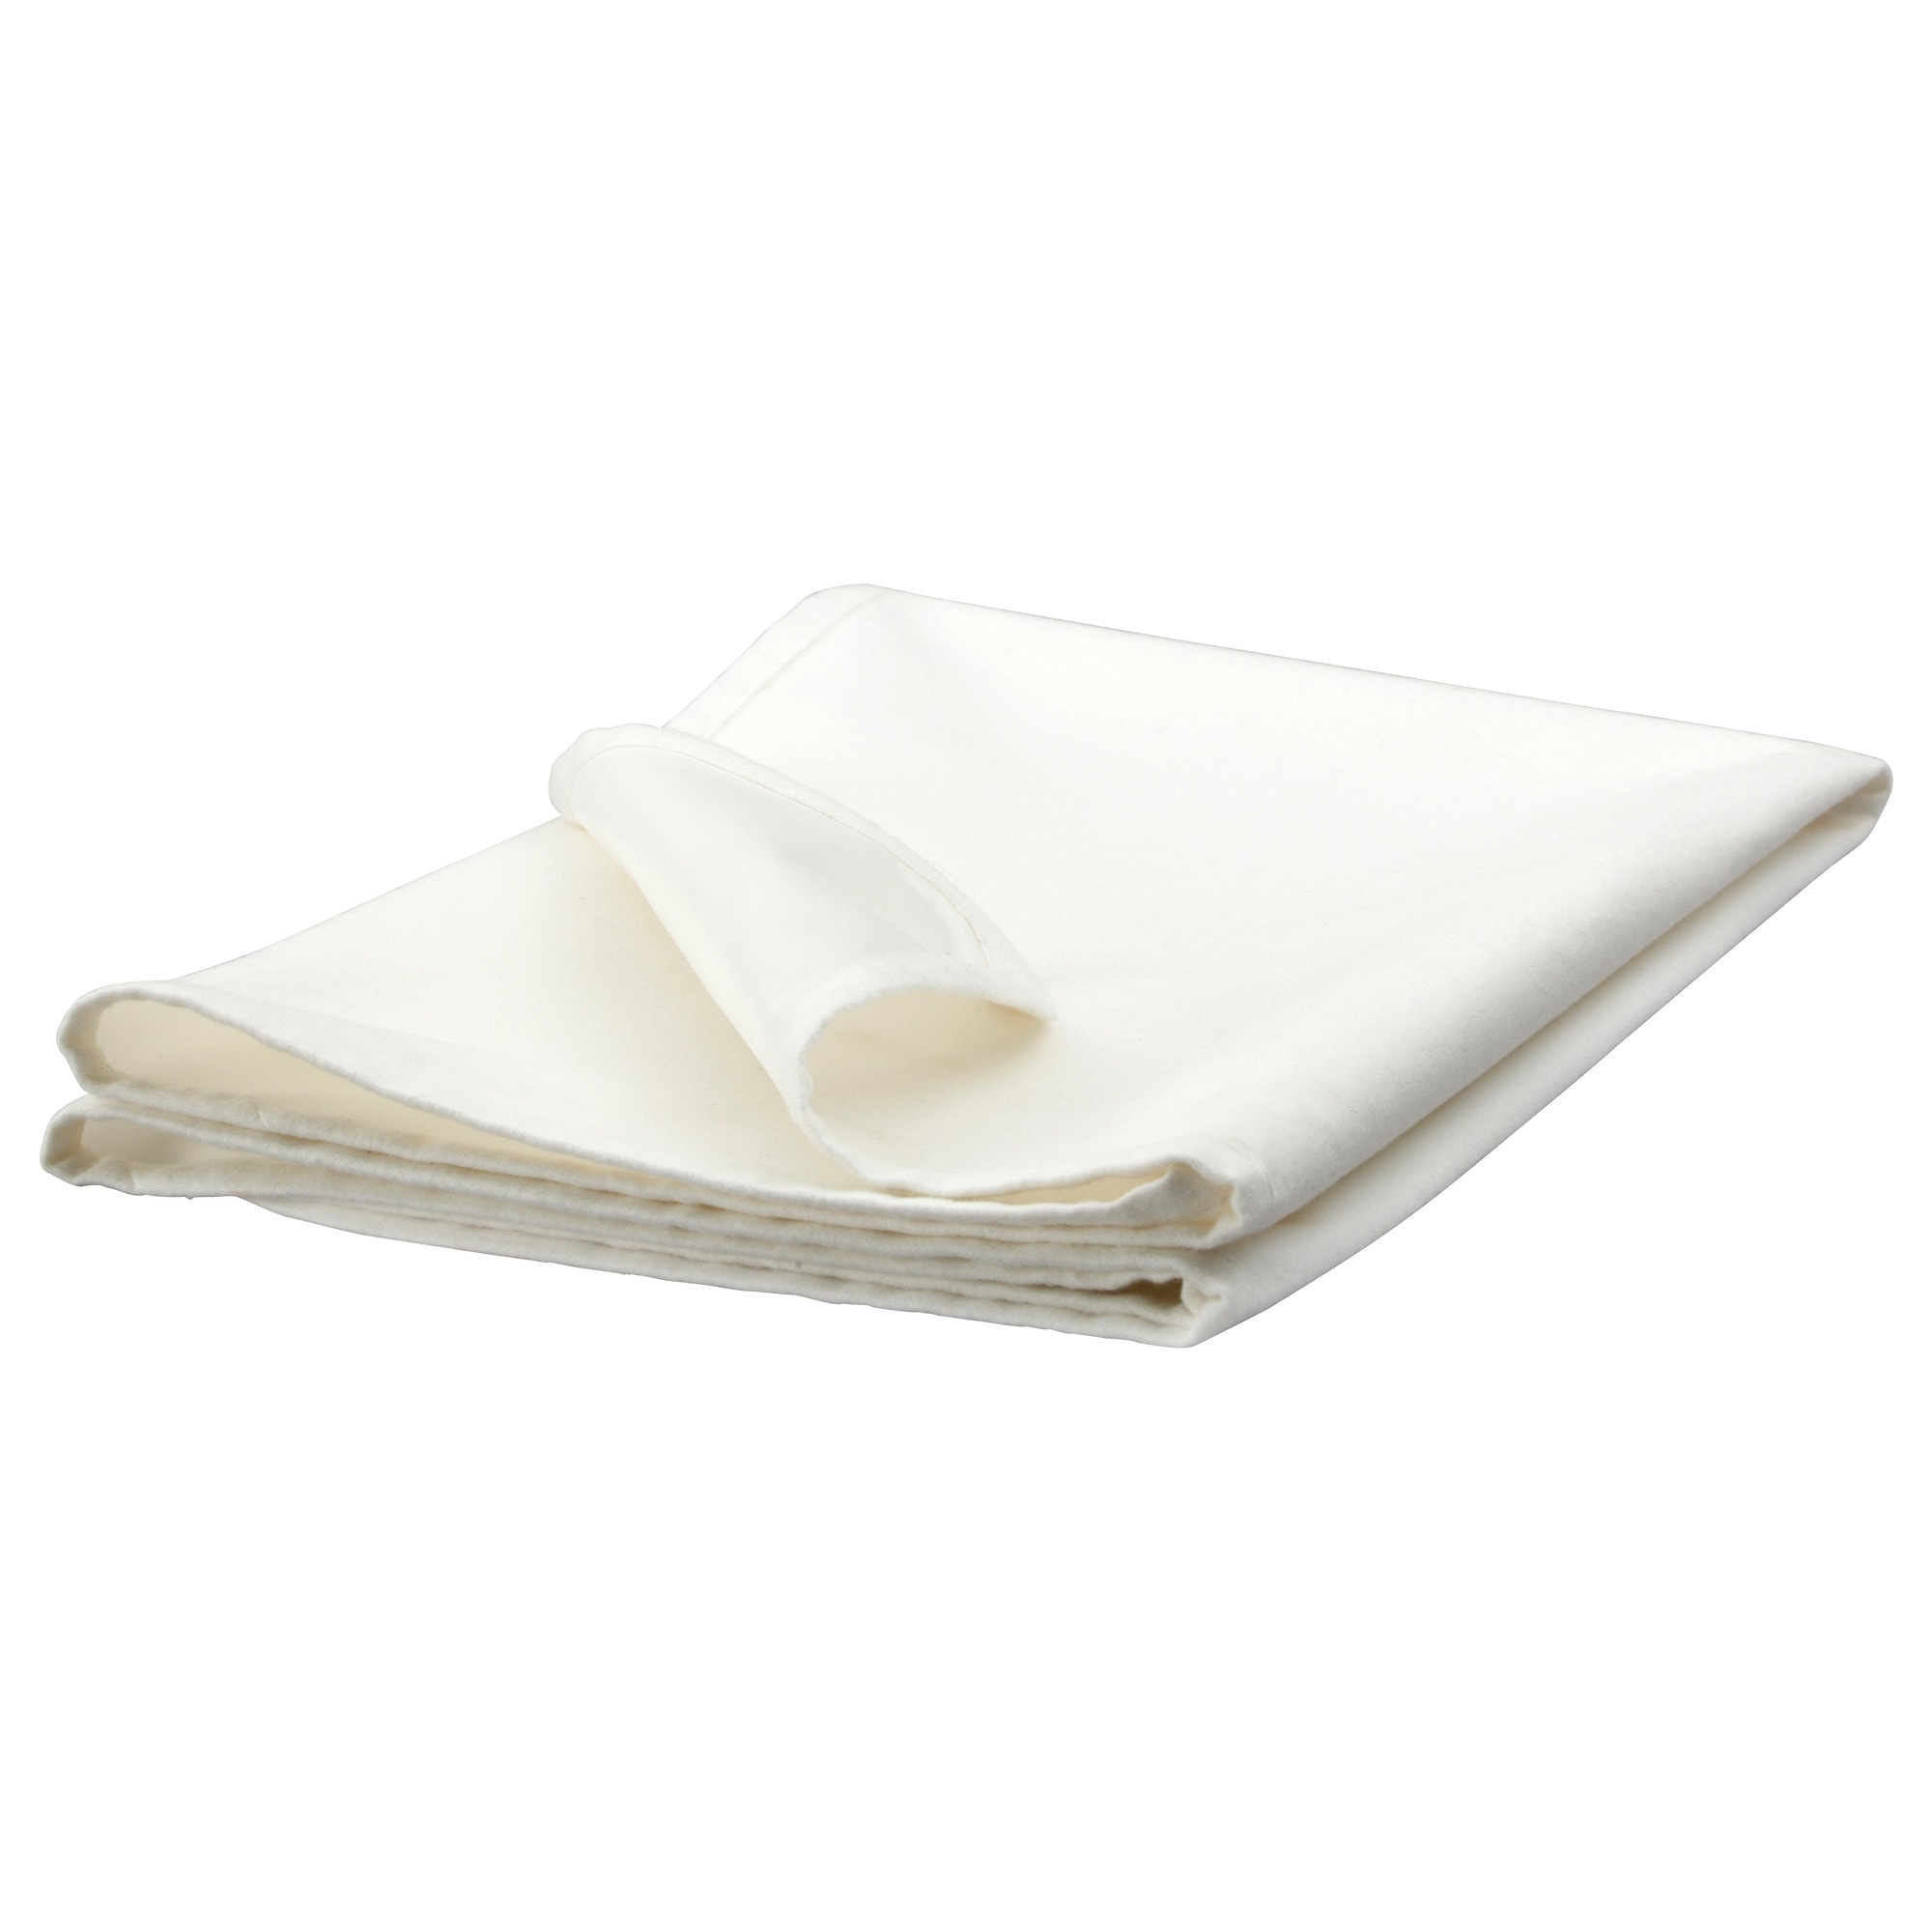 plastic mattress protector. Inter IKEA Systems B.V. 2011 - 2018 | Cookie Policy Privacy Notice Terms Of Purchase B.PgkHQ(JM)2017/688/4 KPDNKK.600-4/7/2. Plastic Mattress Protector